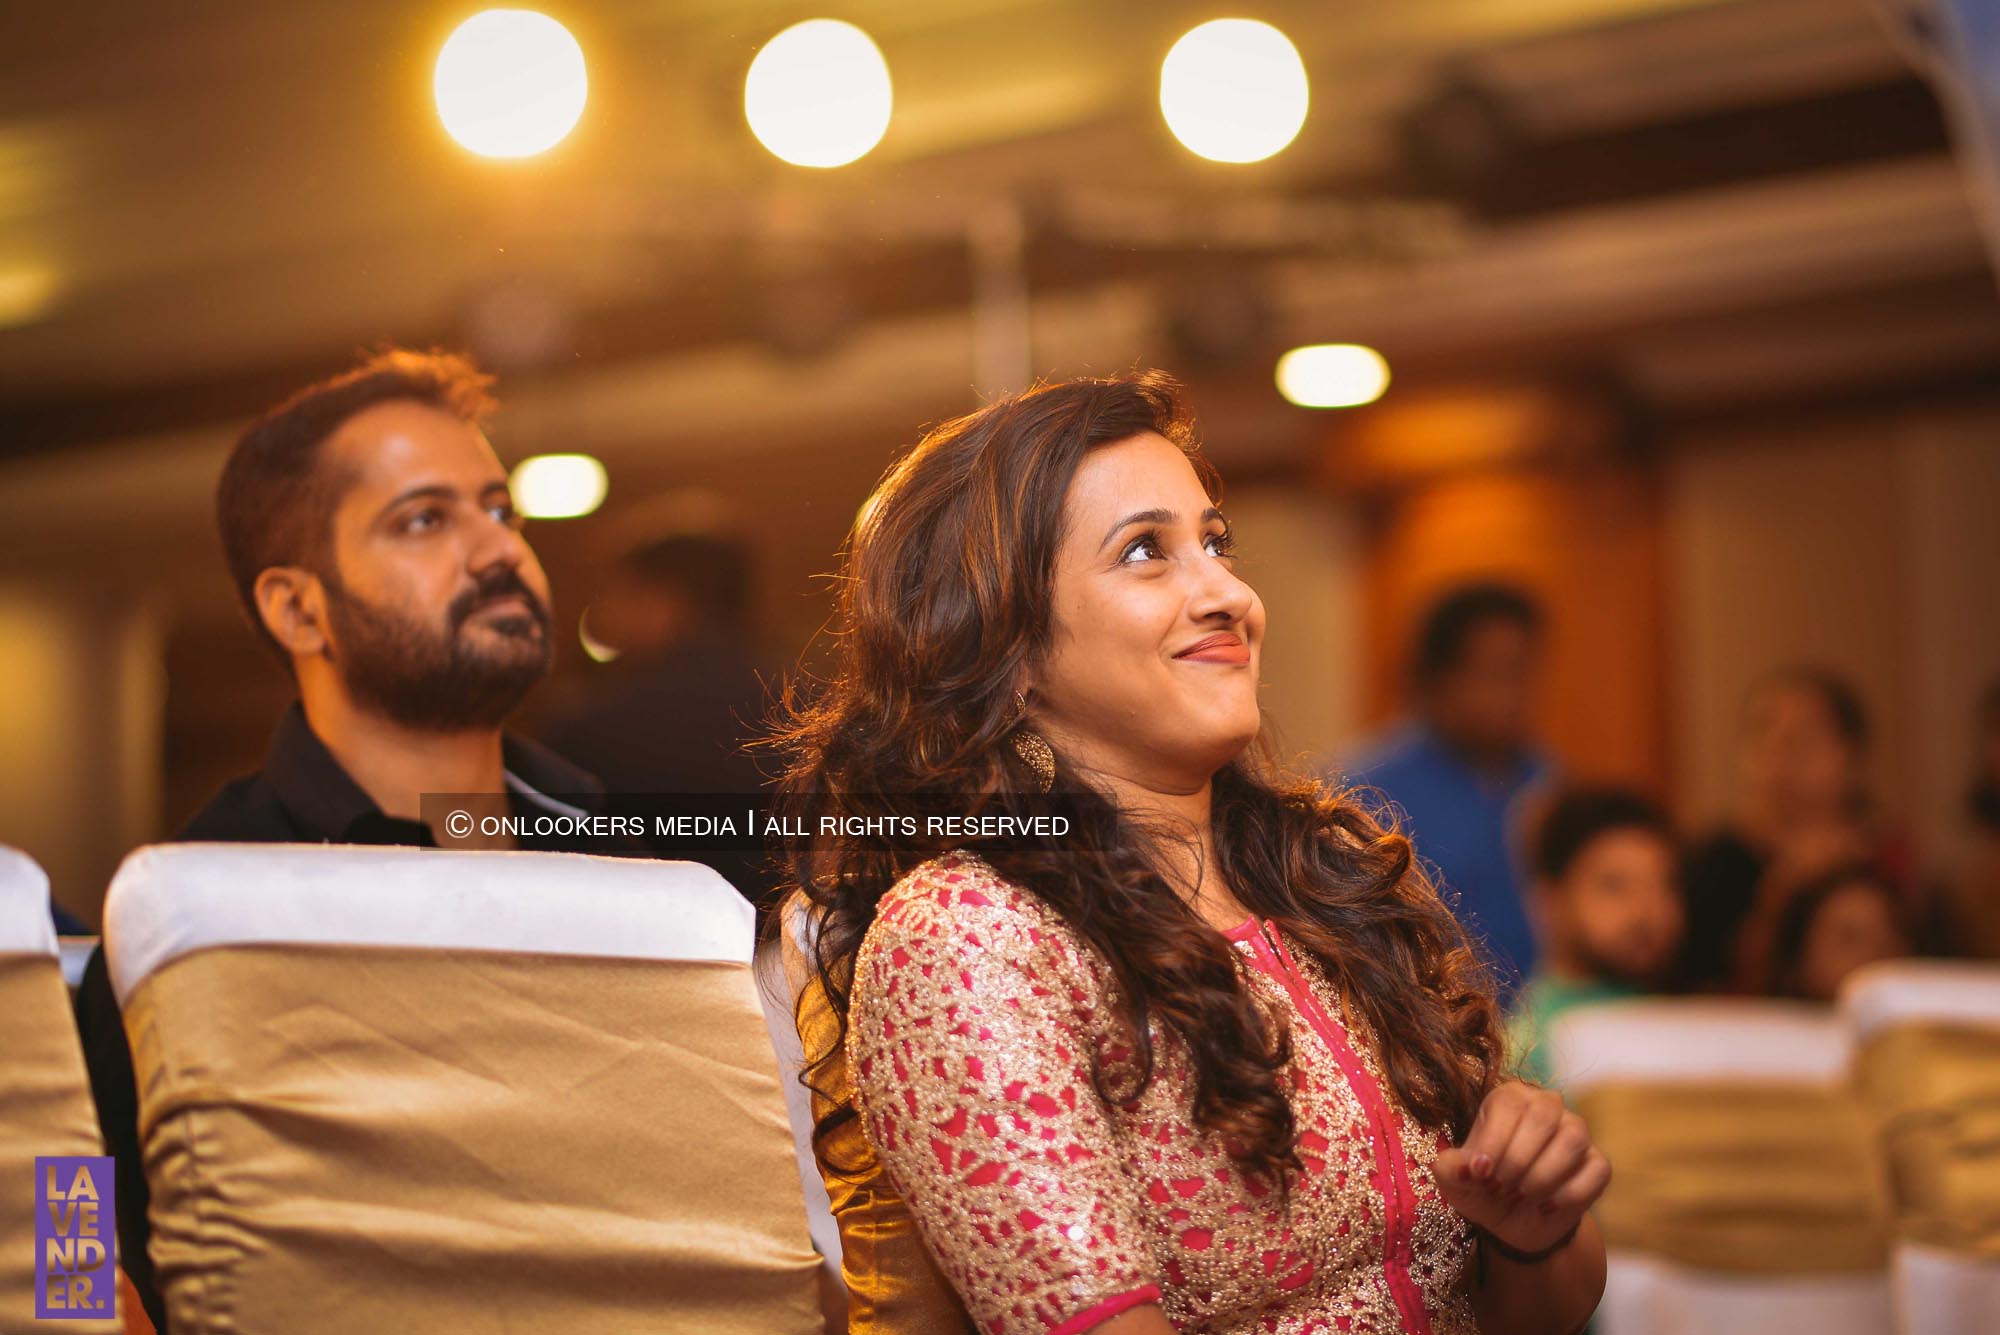 http://onlookersmedia.in/wp-content/uploads/2018/05/sreejith-vijay-wedding-stills-images-94.jpg